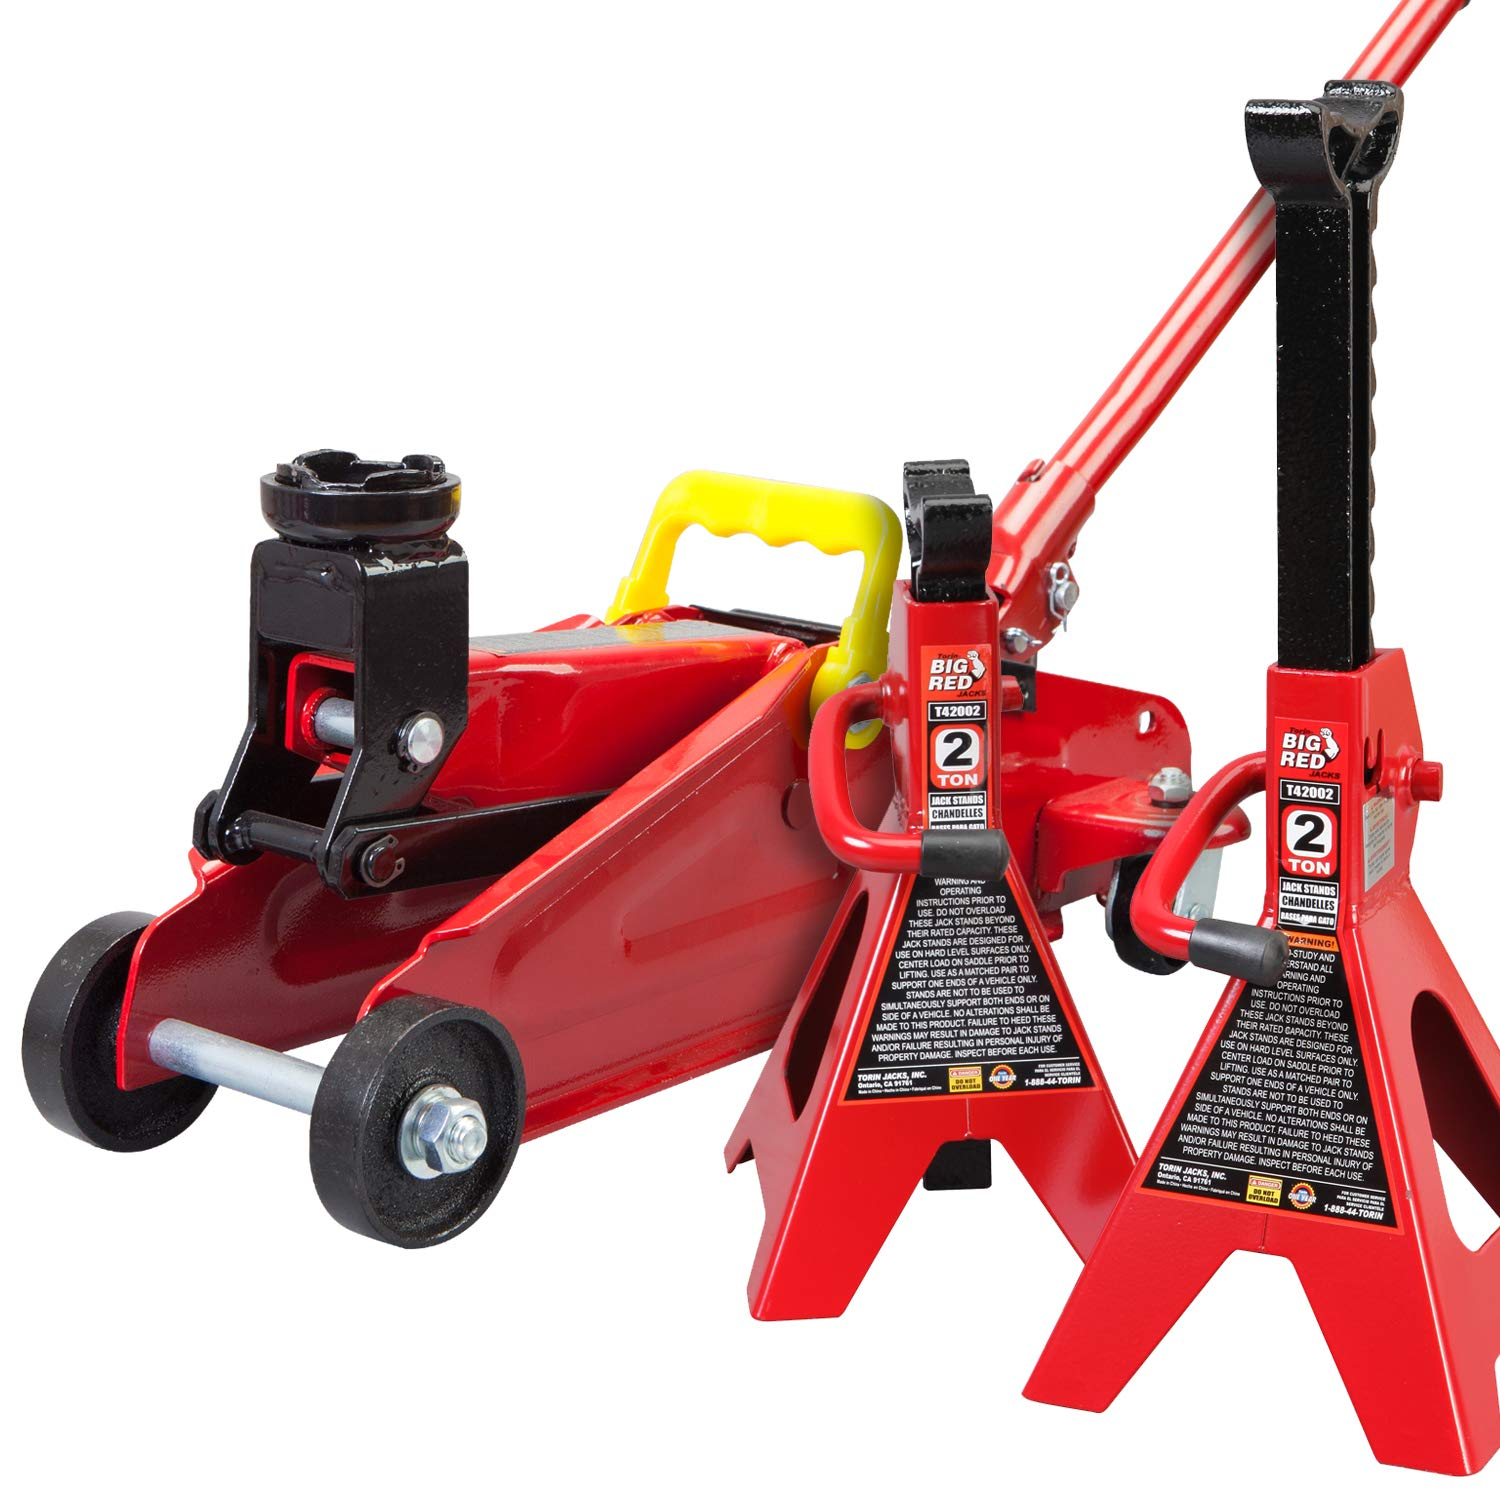 Torin Big Red Hydraulic Trolley Floor Jack Combo with 2 Jack Stands, 2 Ton Capacity by Torin